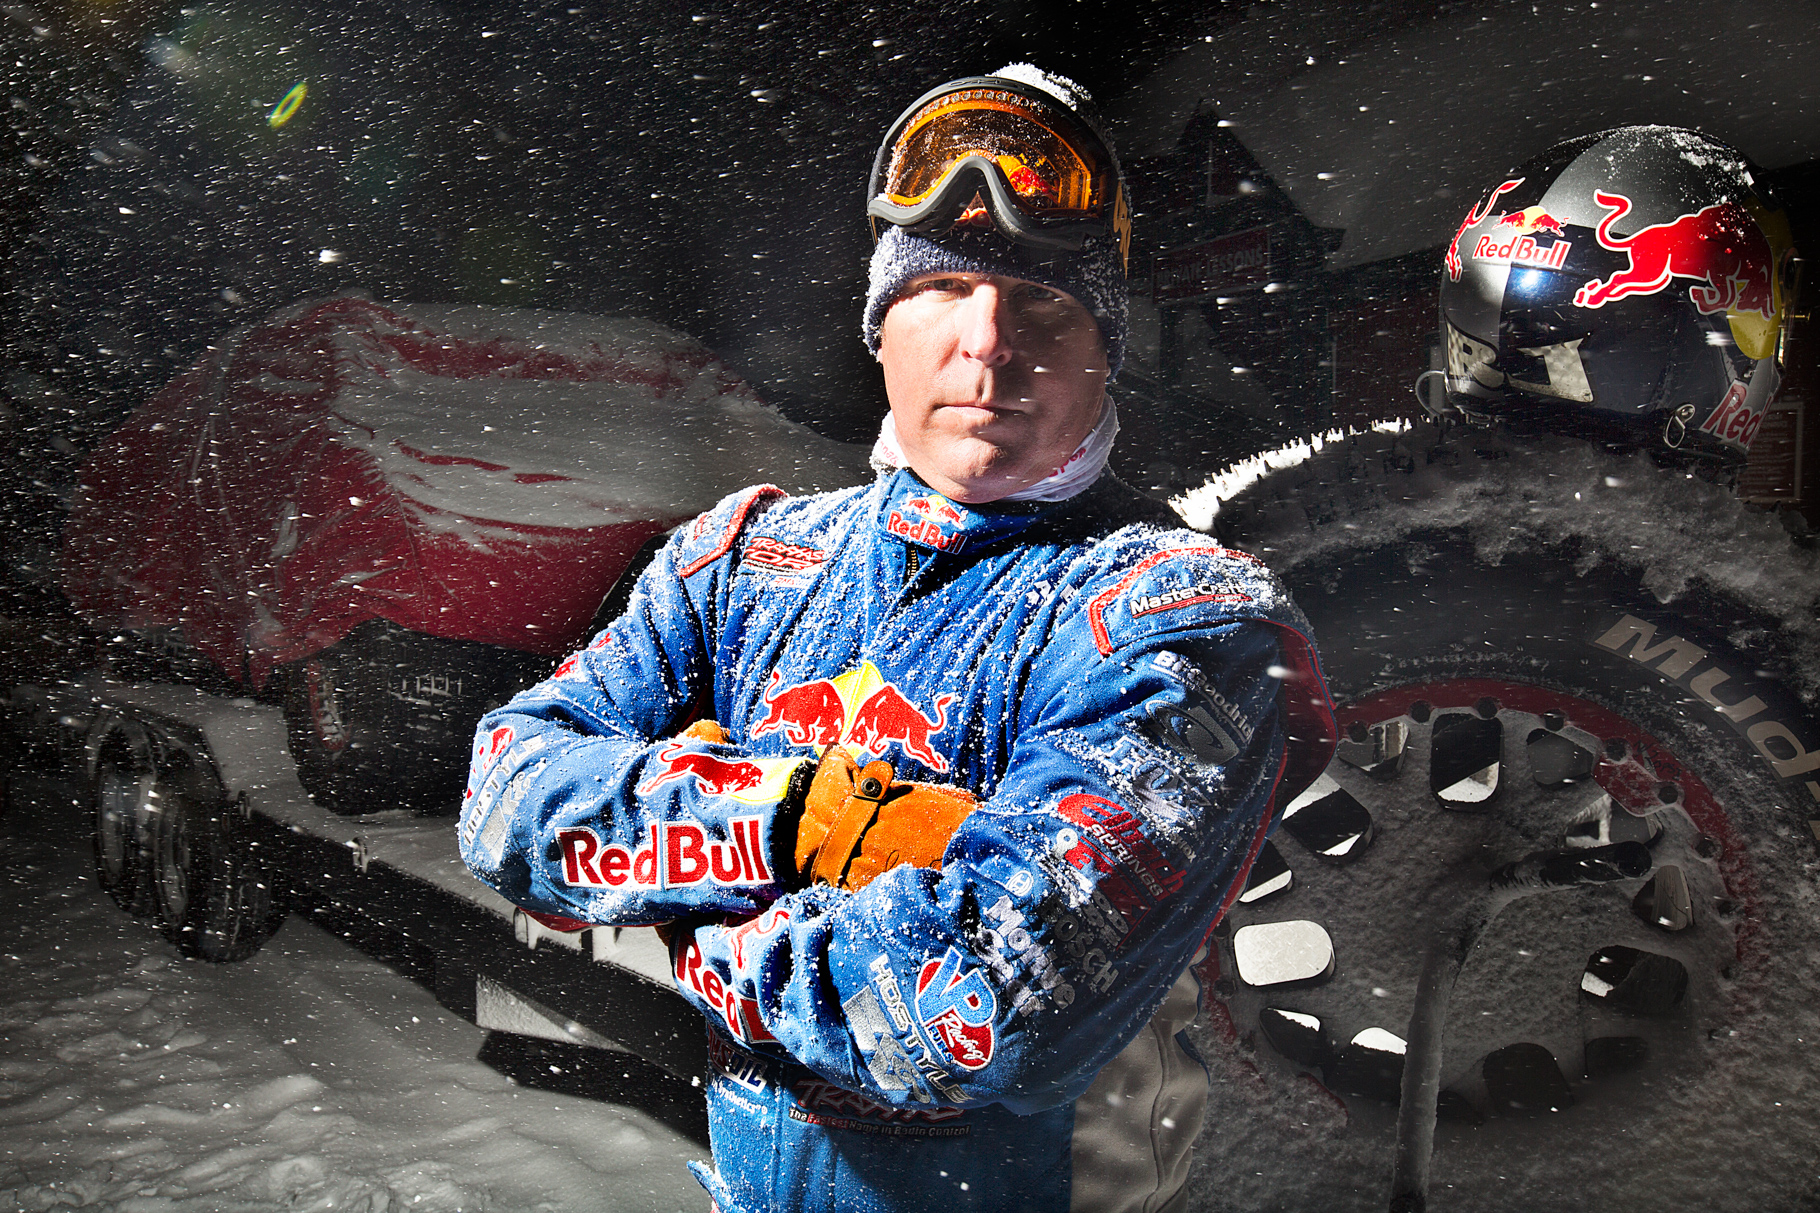 Ricky Johnson Frozen Rush for Red Bull by Boston based commercial portrait photographer Brian Nevins